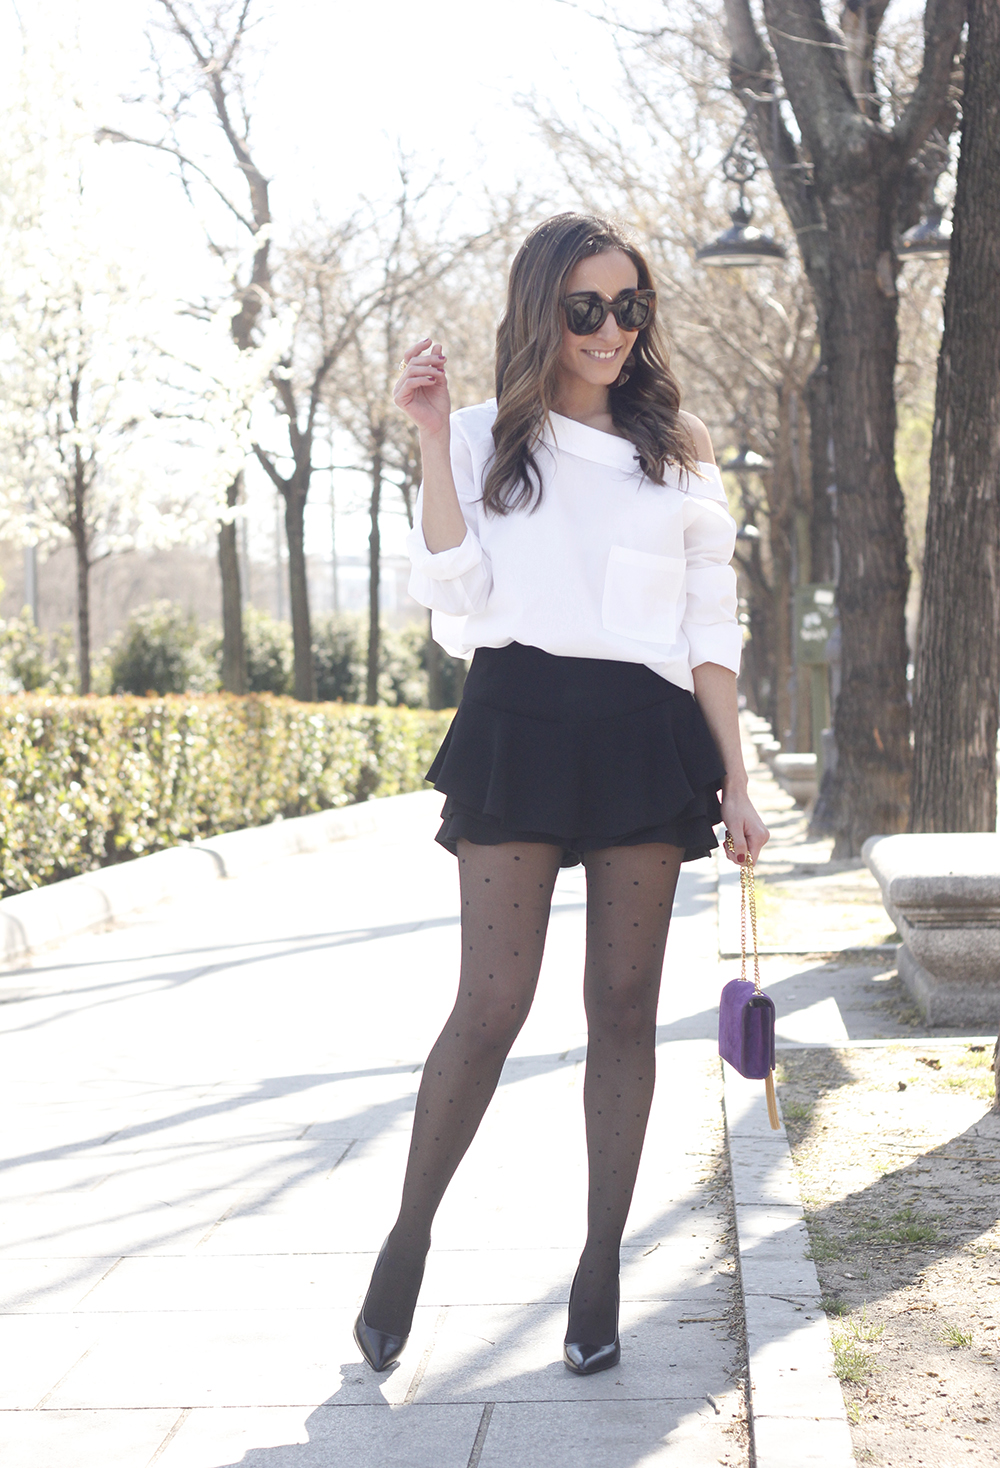 Ruffled shorts white shirt saint lauren bag céline outfit style01